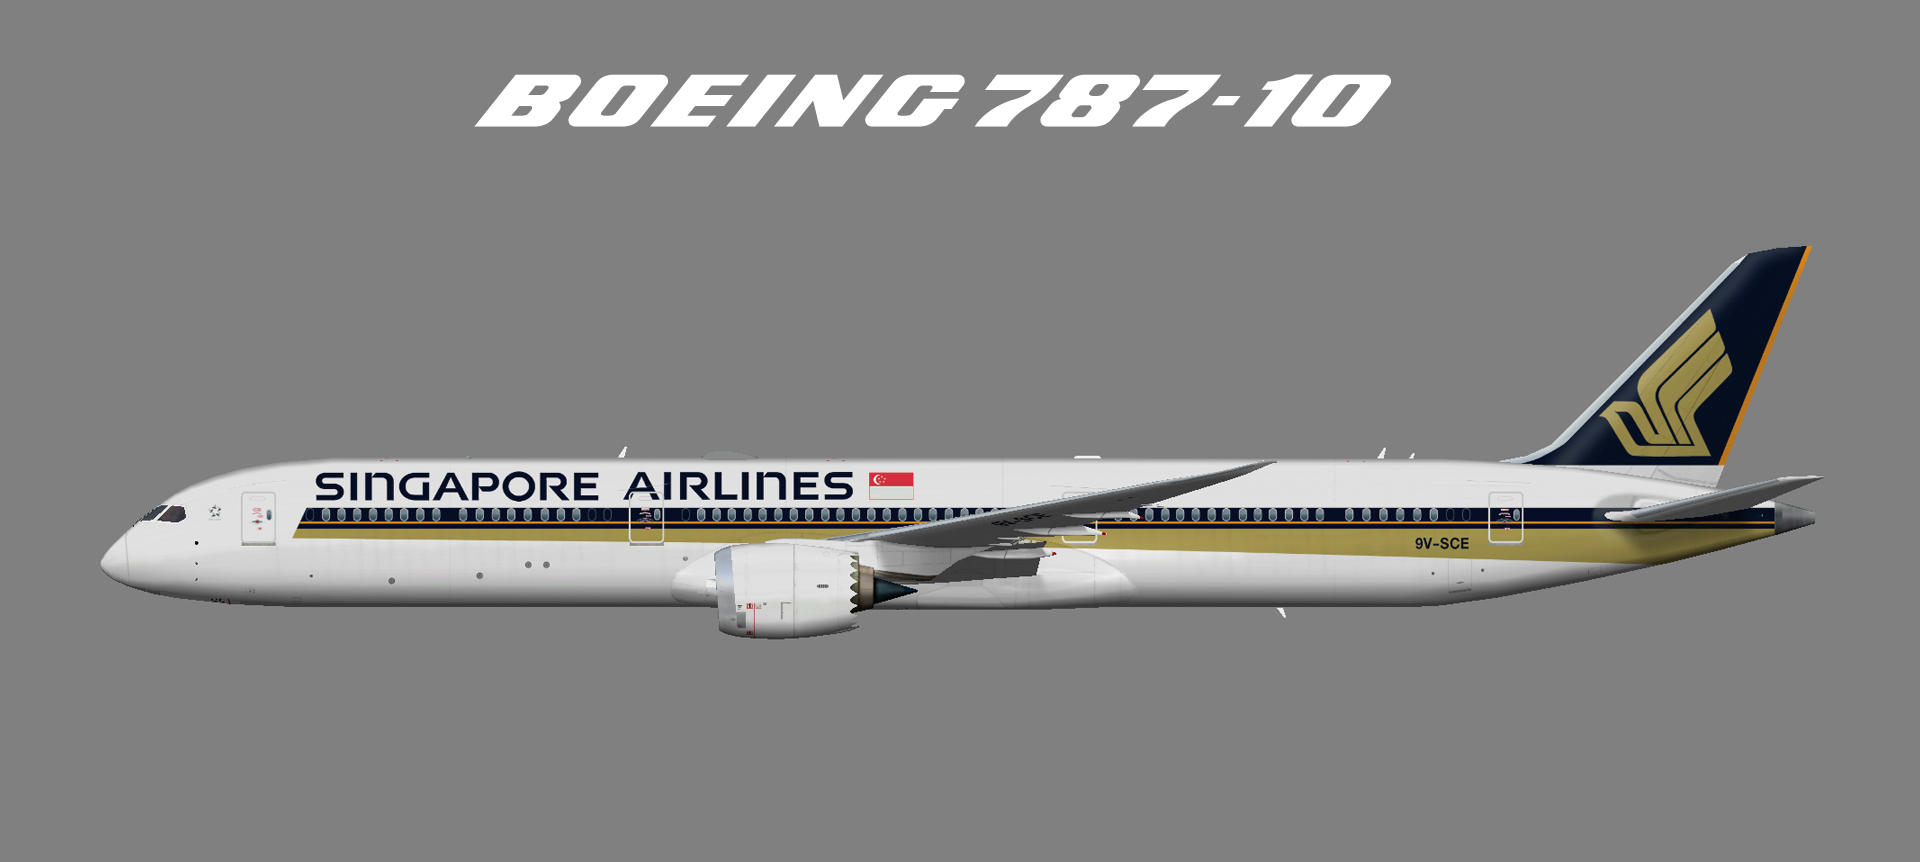 Singapore Airlines Boeing 787-10 (FSP)